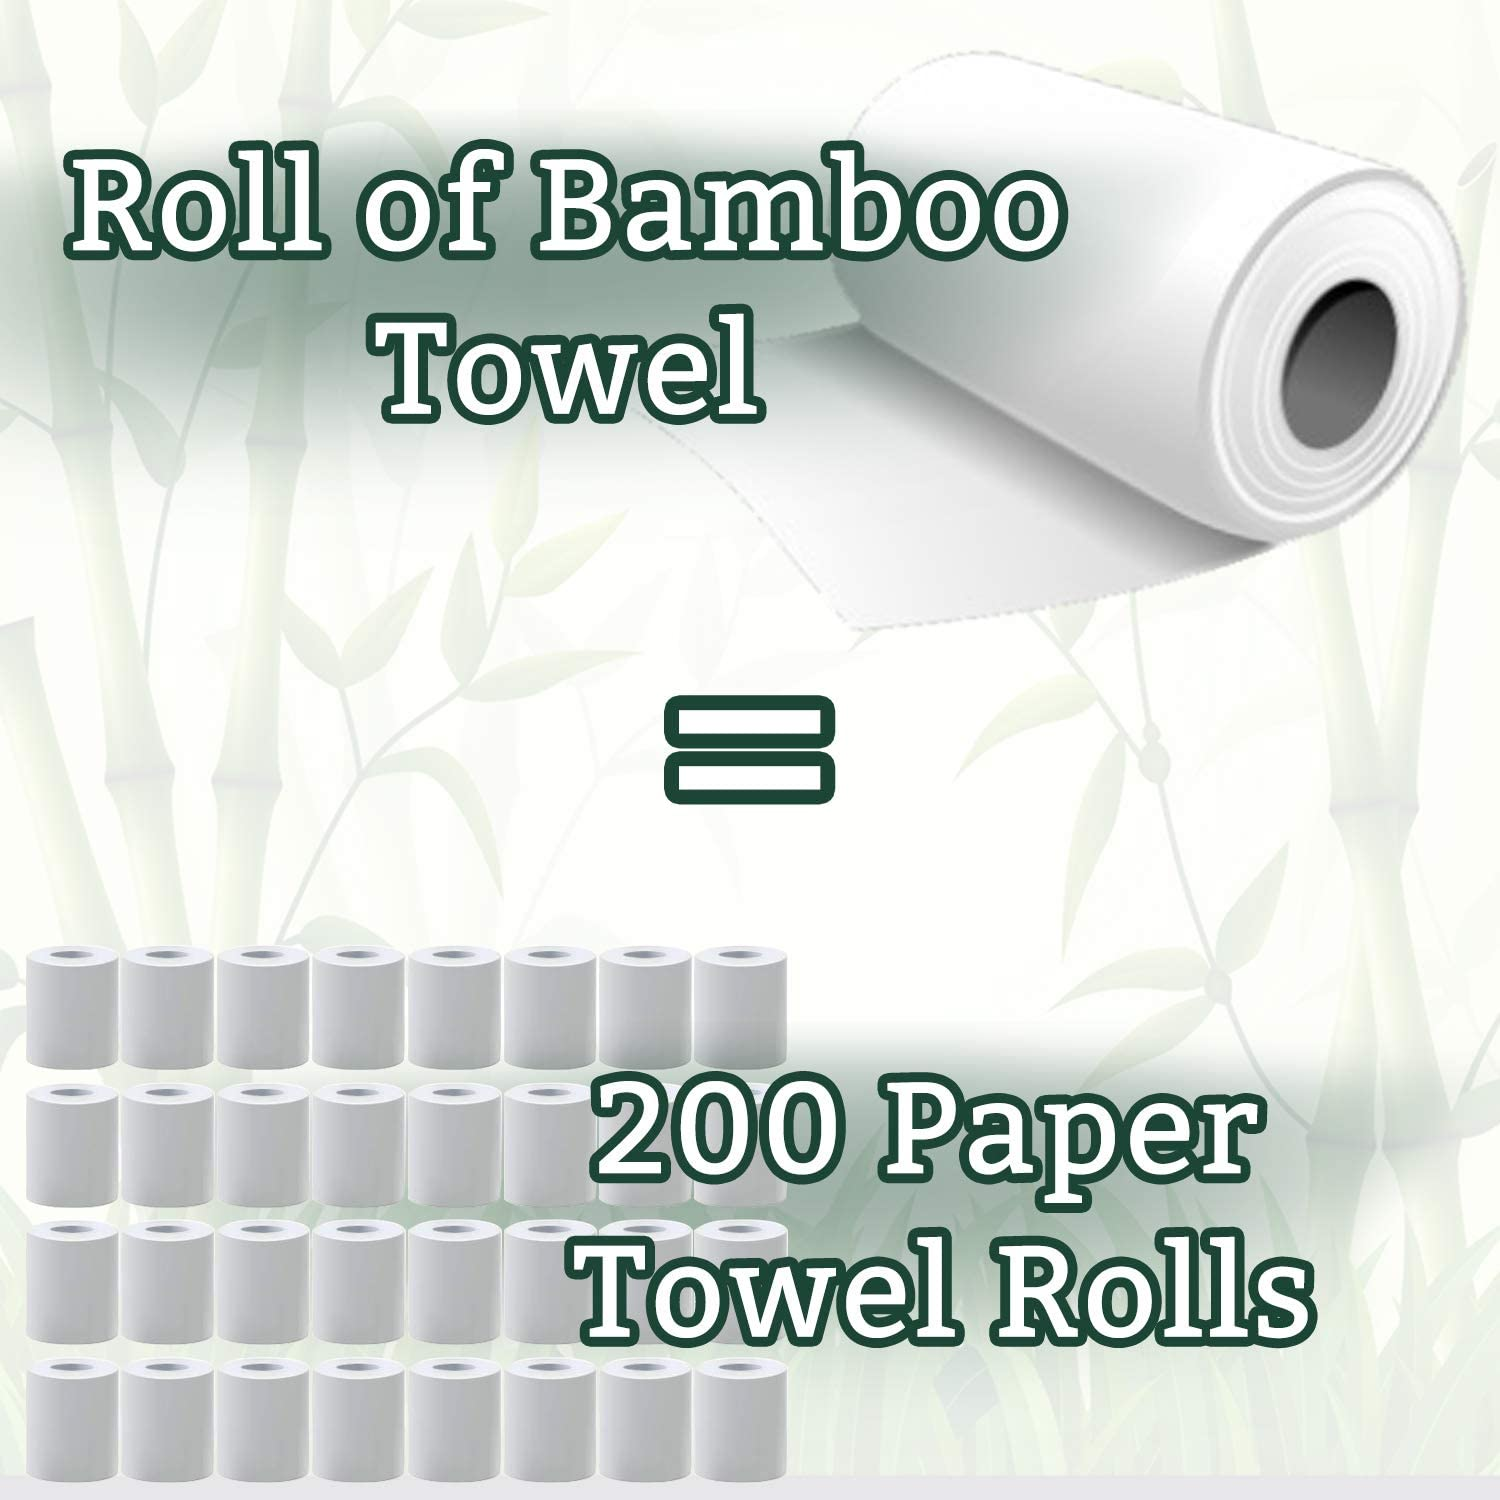 Bamboo Reusable Paper Towels Washable Roll (20 Sheets) Zero Waste Unpaper Towel Eco Friendly Products Sustainable Gifts - Kitchen Cleaning Rolls Alternative - Paper Towels Bulk Recycled Napkins Cloth: Health & Personal Care